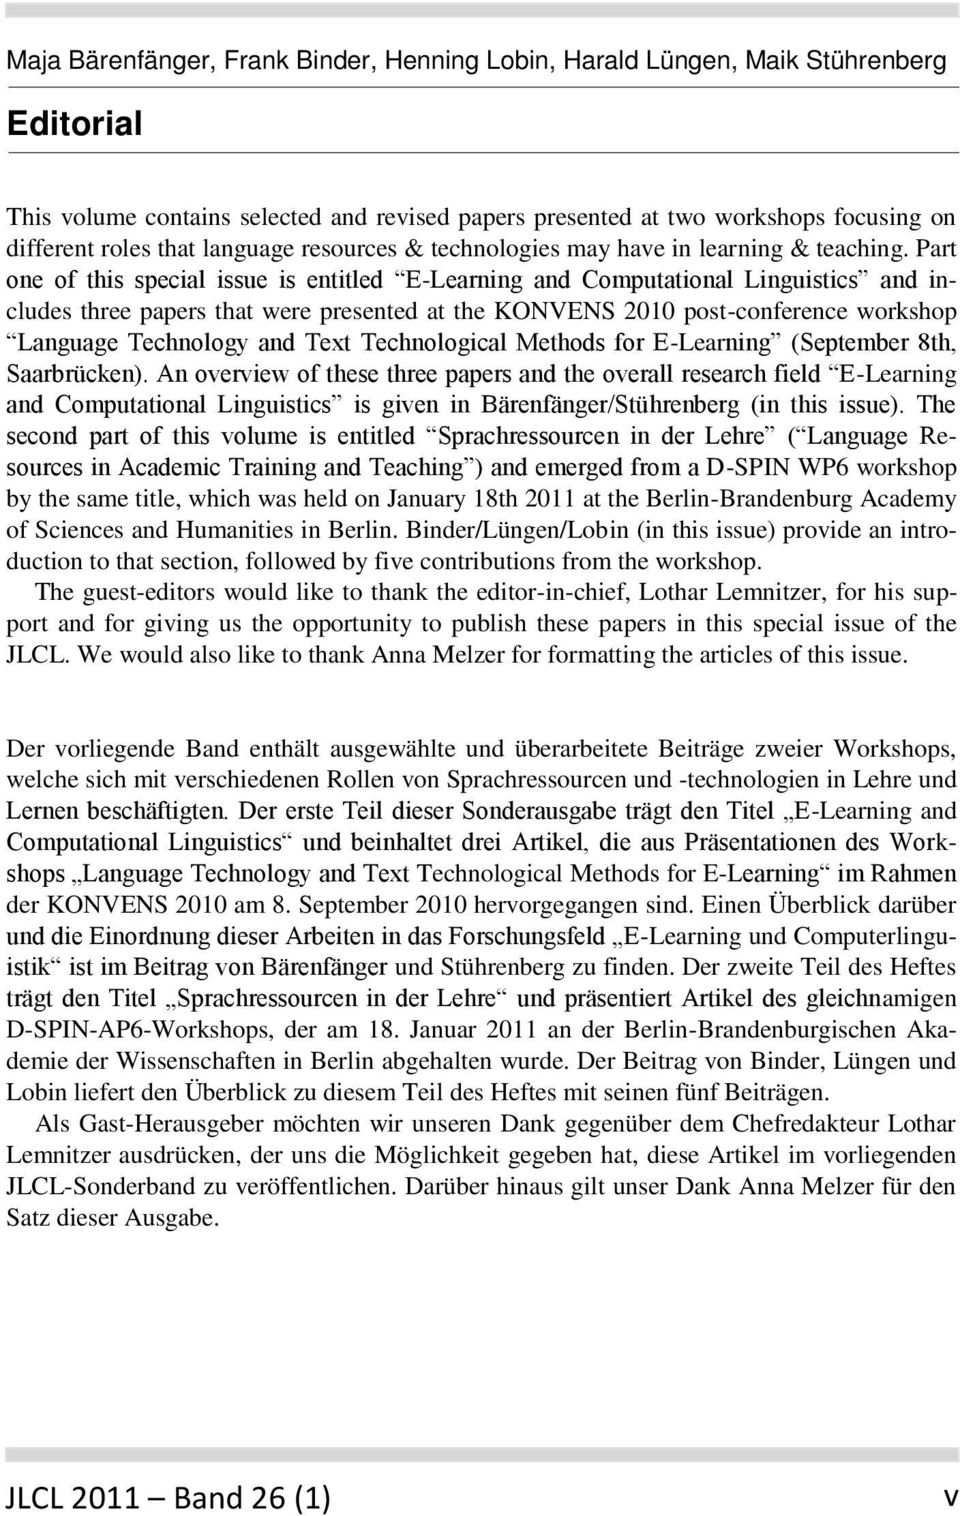 Part one of this special issue is entitled E-Learning and Computational Linguistics and includes three papers that were presented at the KONVENS 2010 post-conference workshop Language Technology and